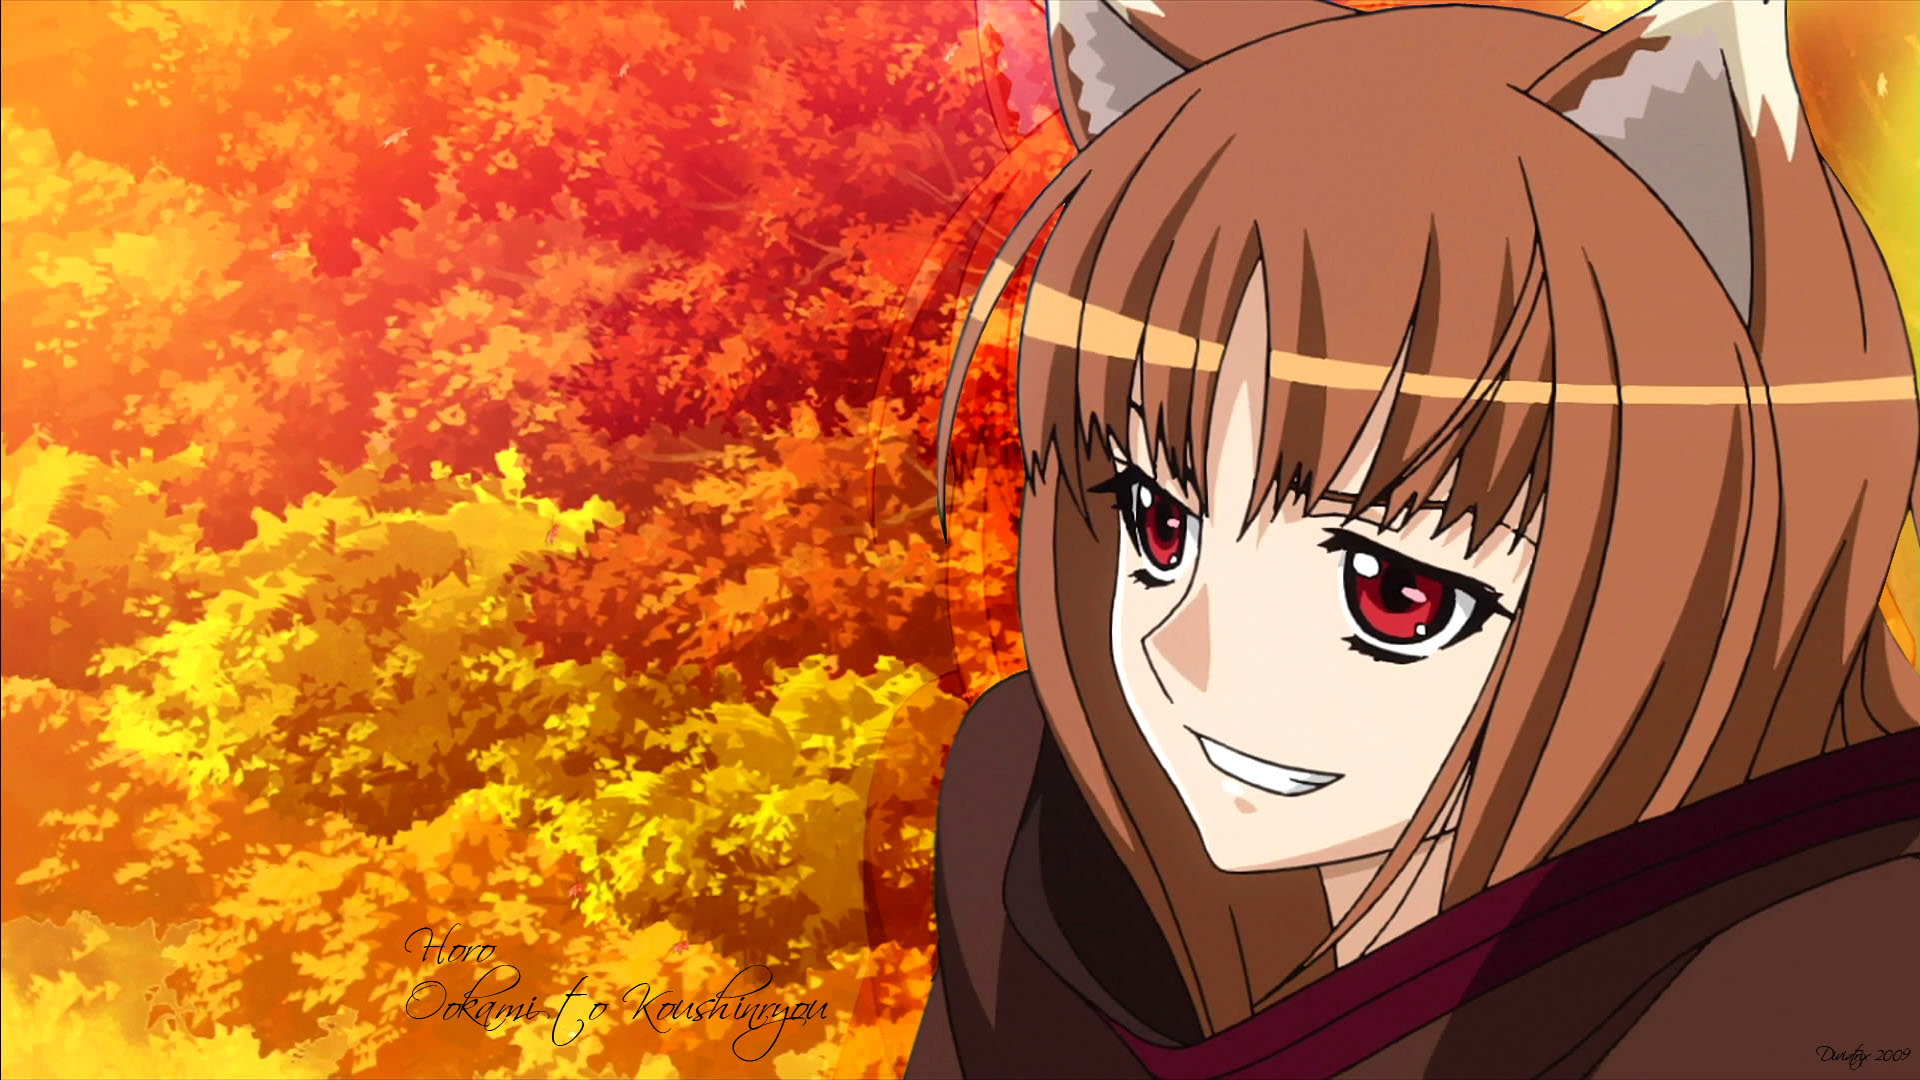 36 Spice And Wolf Wallpaper Hd On Wallpapersafari